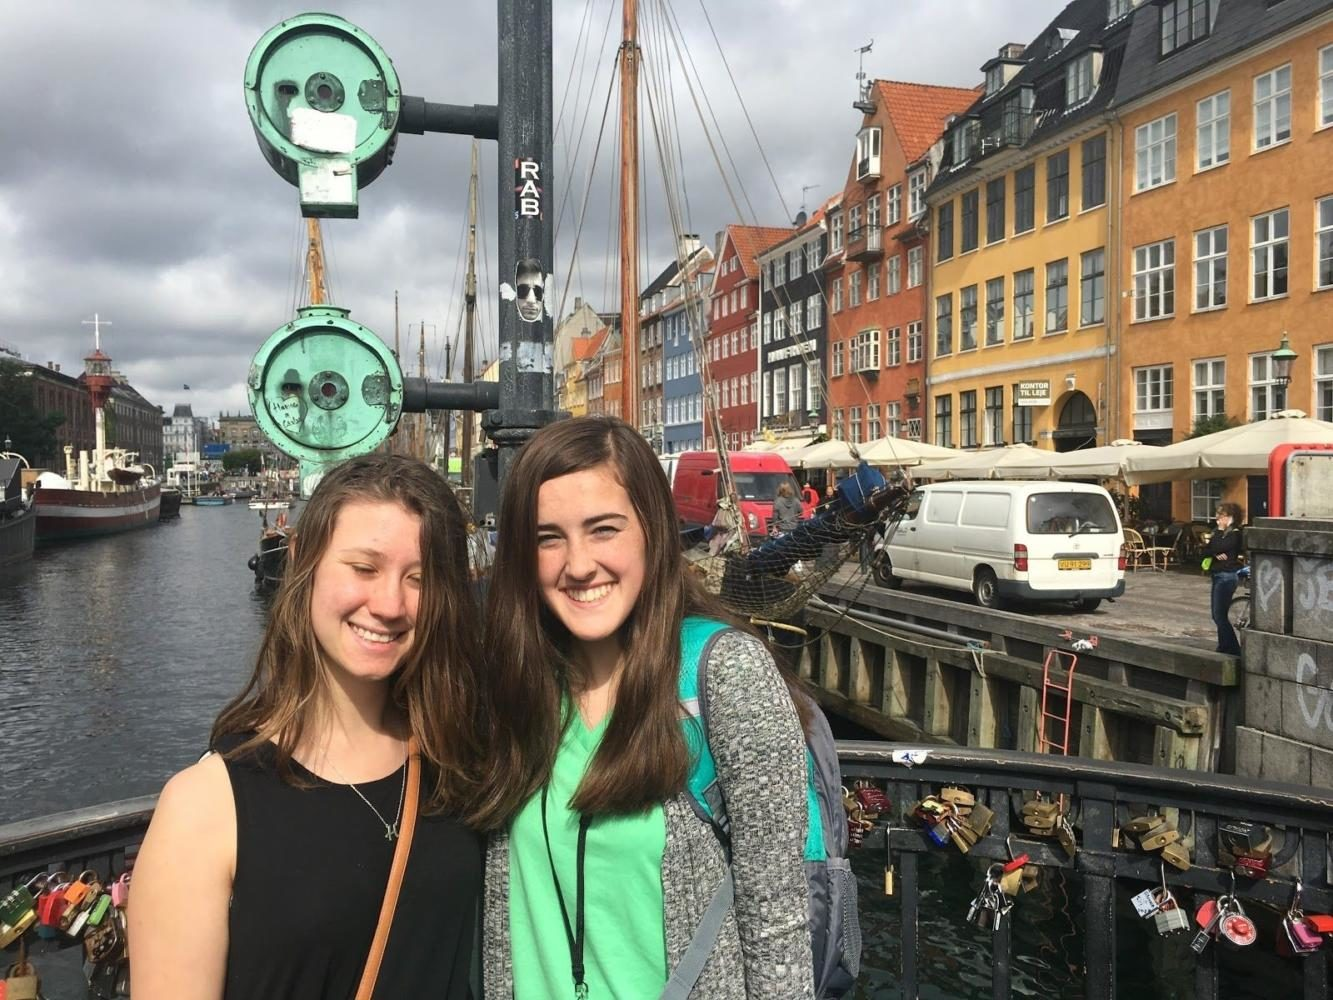 This is from a trip Kaitlyn Hawley went to in Copenhagen, Denmark with an exchange student from New Zealand.